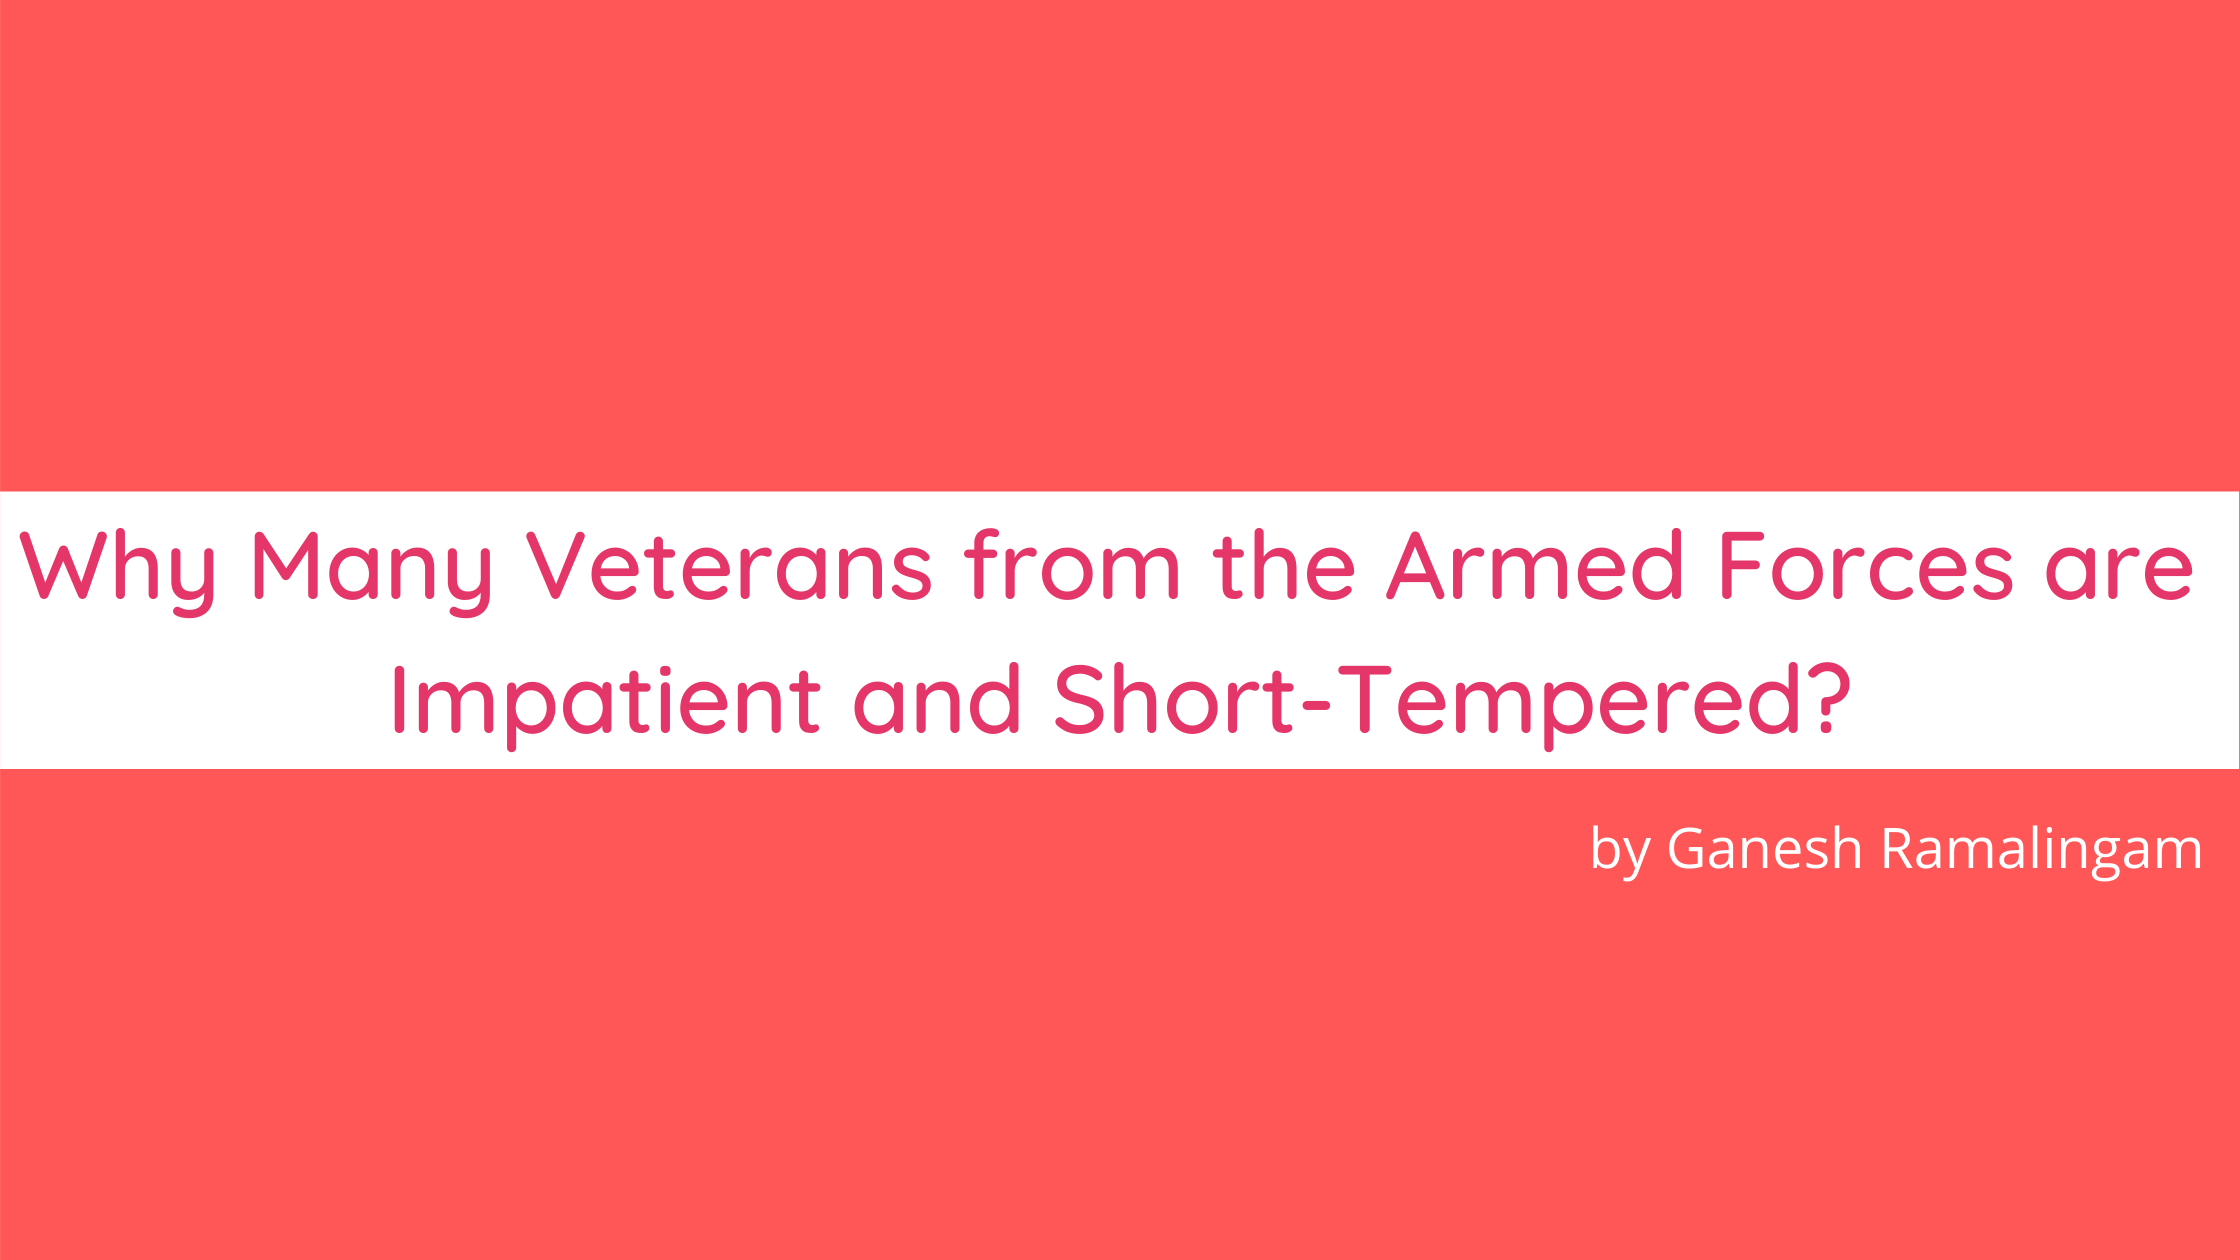 Why Many Veterans from the Armed Forces are Impatient and Short-Tempered?